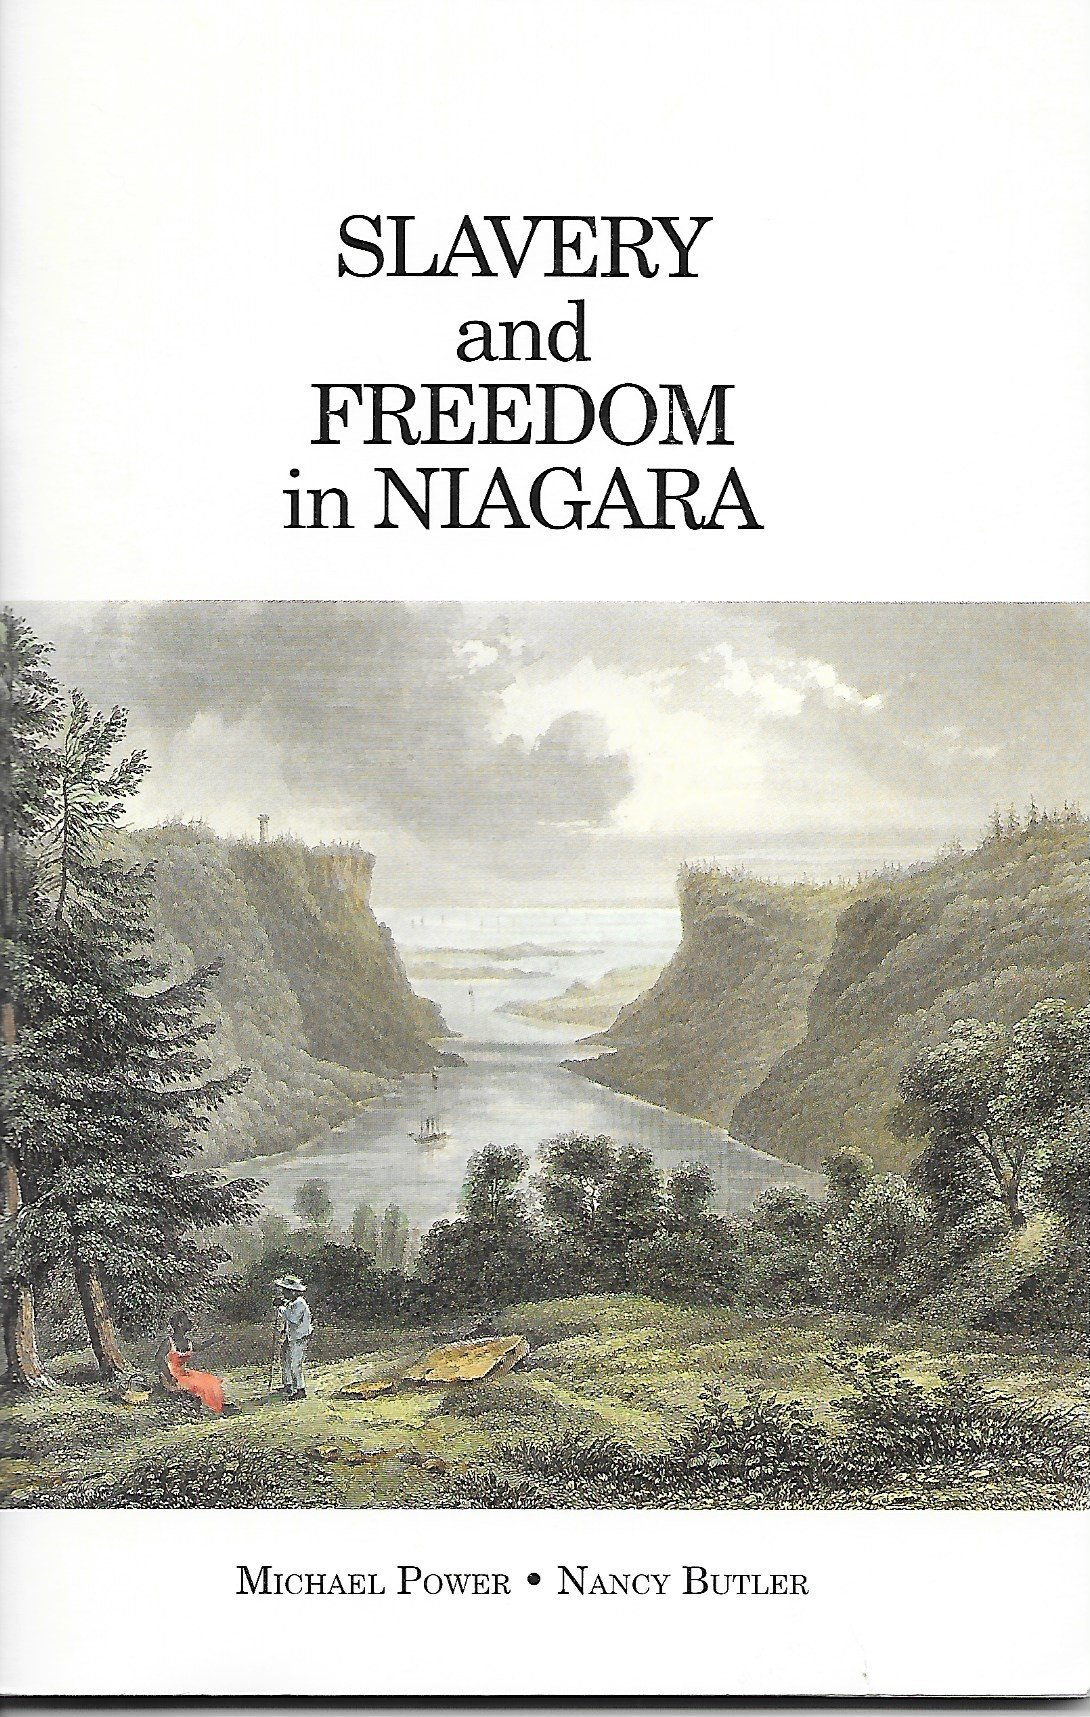 Amazon.in: Buy Slavery and Freedom in Niagara Book Online at Low ...